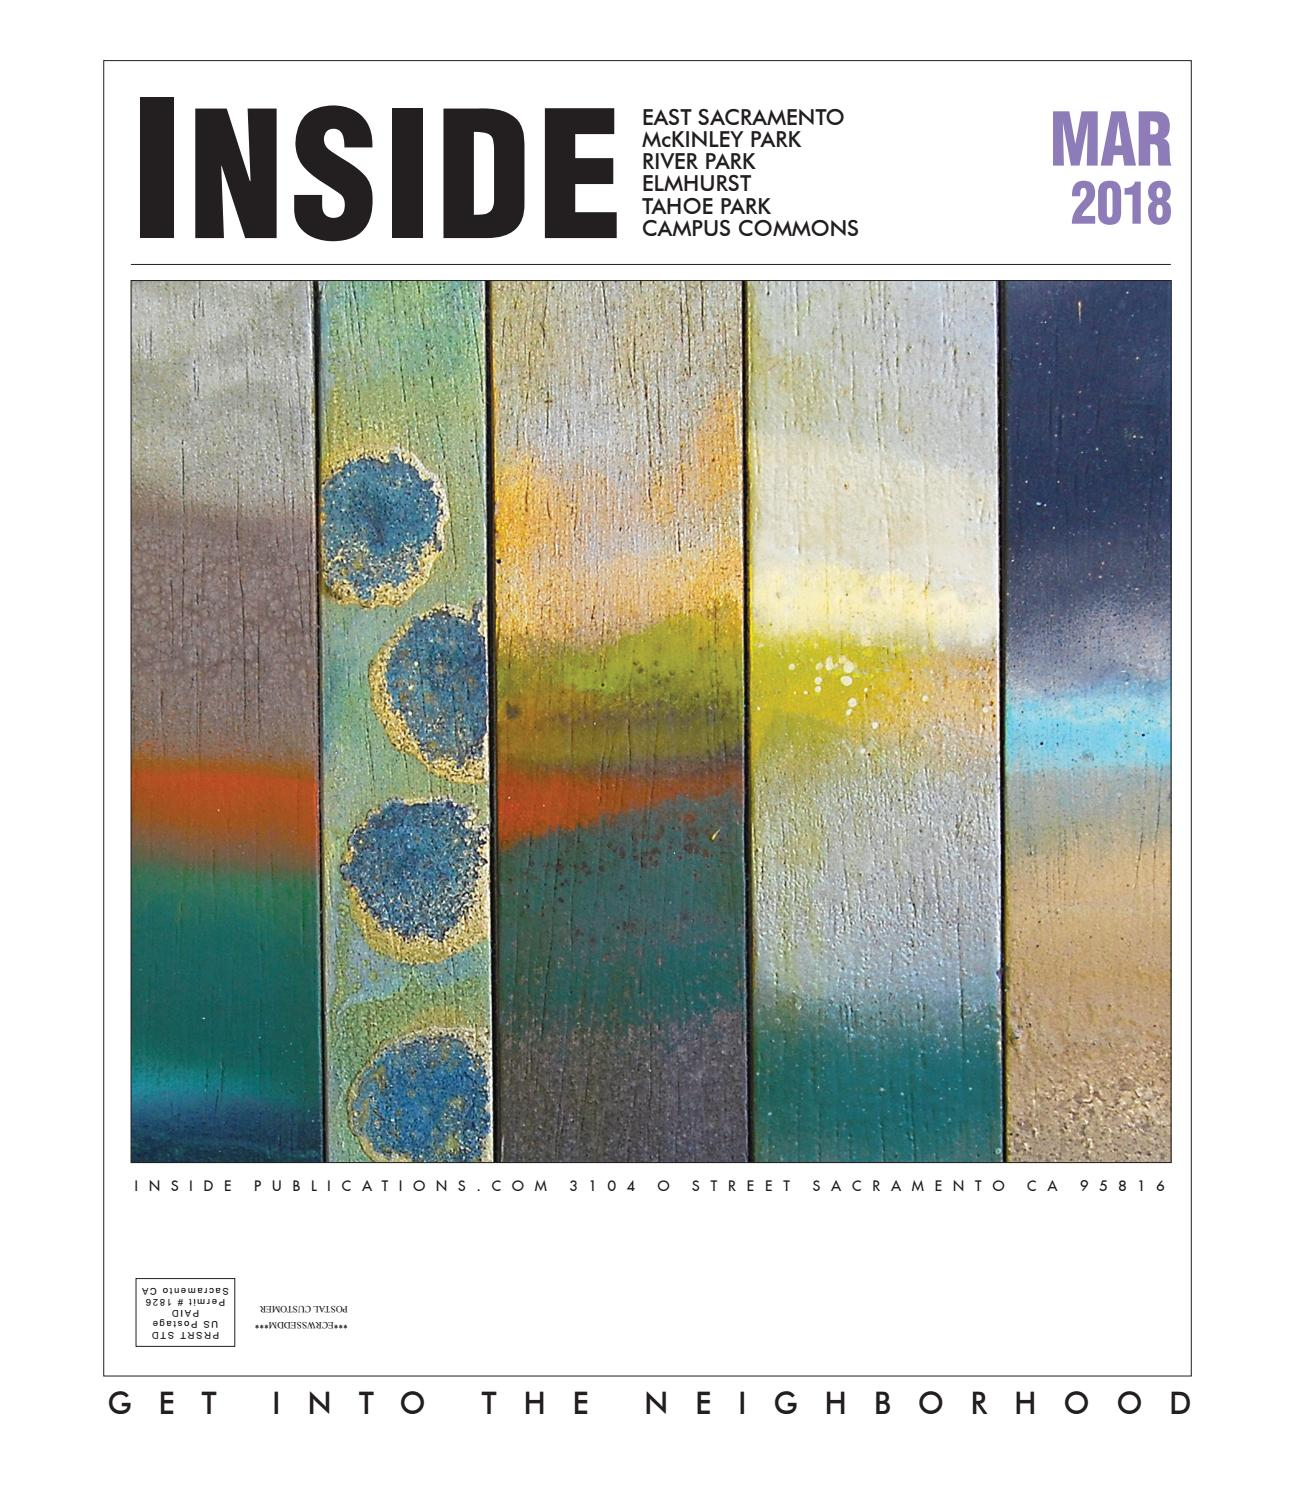 inside east sacramento mar 2018 by inside publications issuu